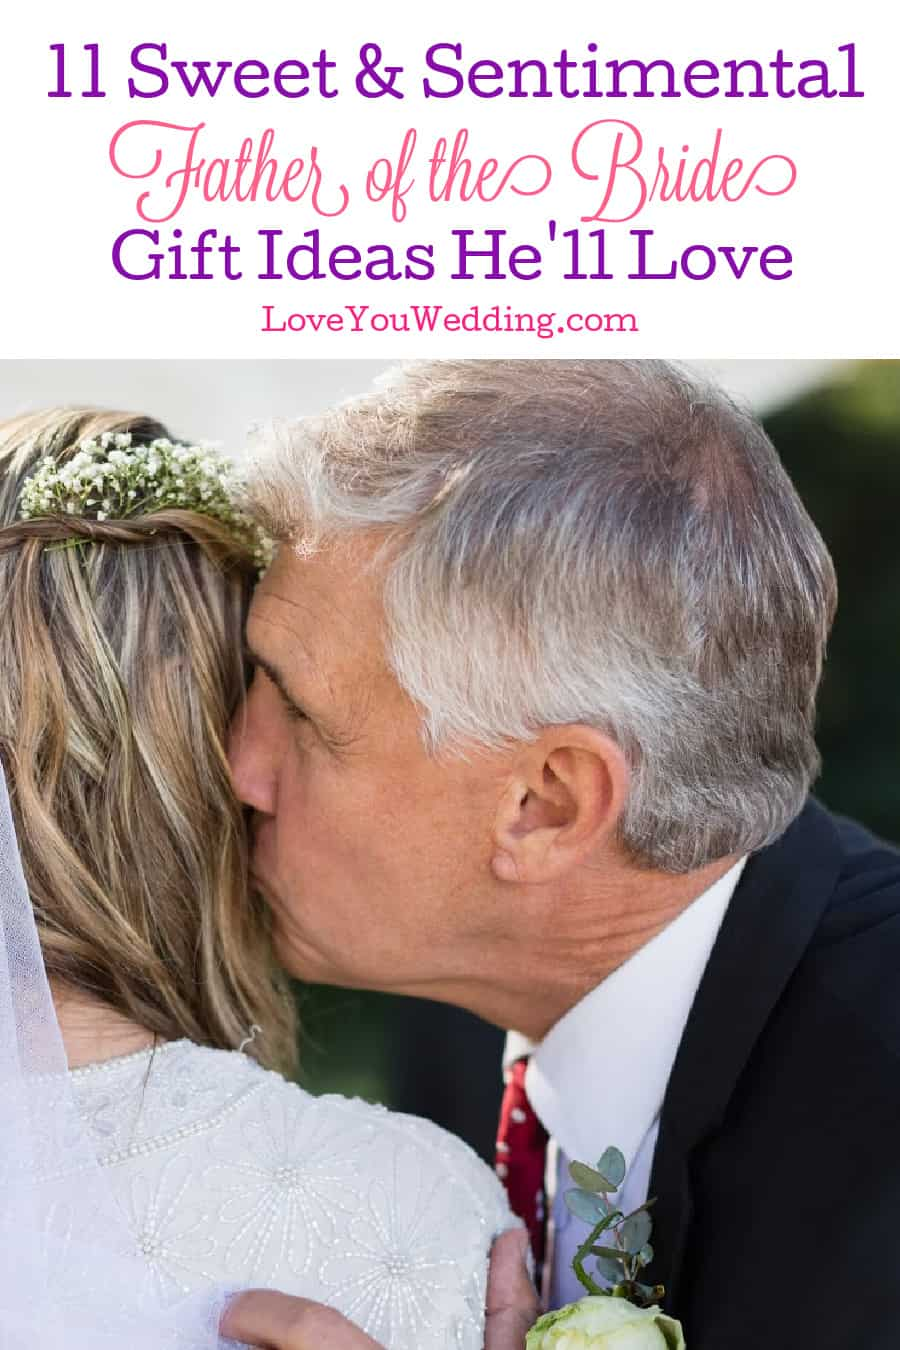 If you're looking for some sweet and sentimental Father of the Bride gifts, you'll love these ideas! They fit all budgets! Take a look!